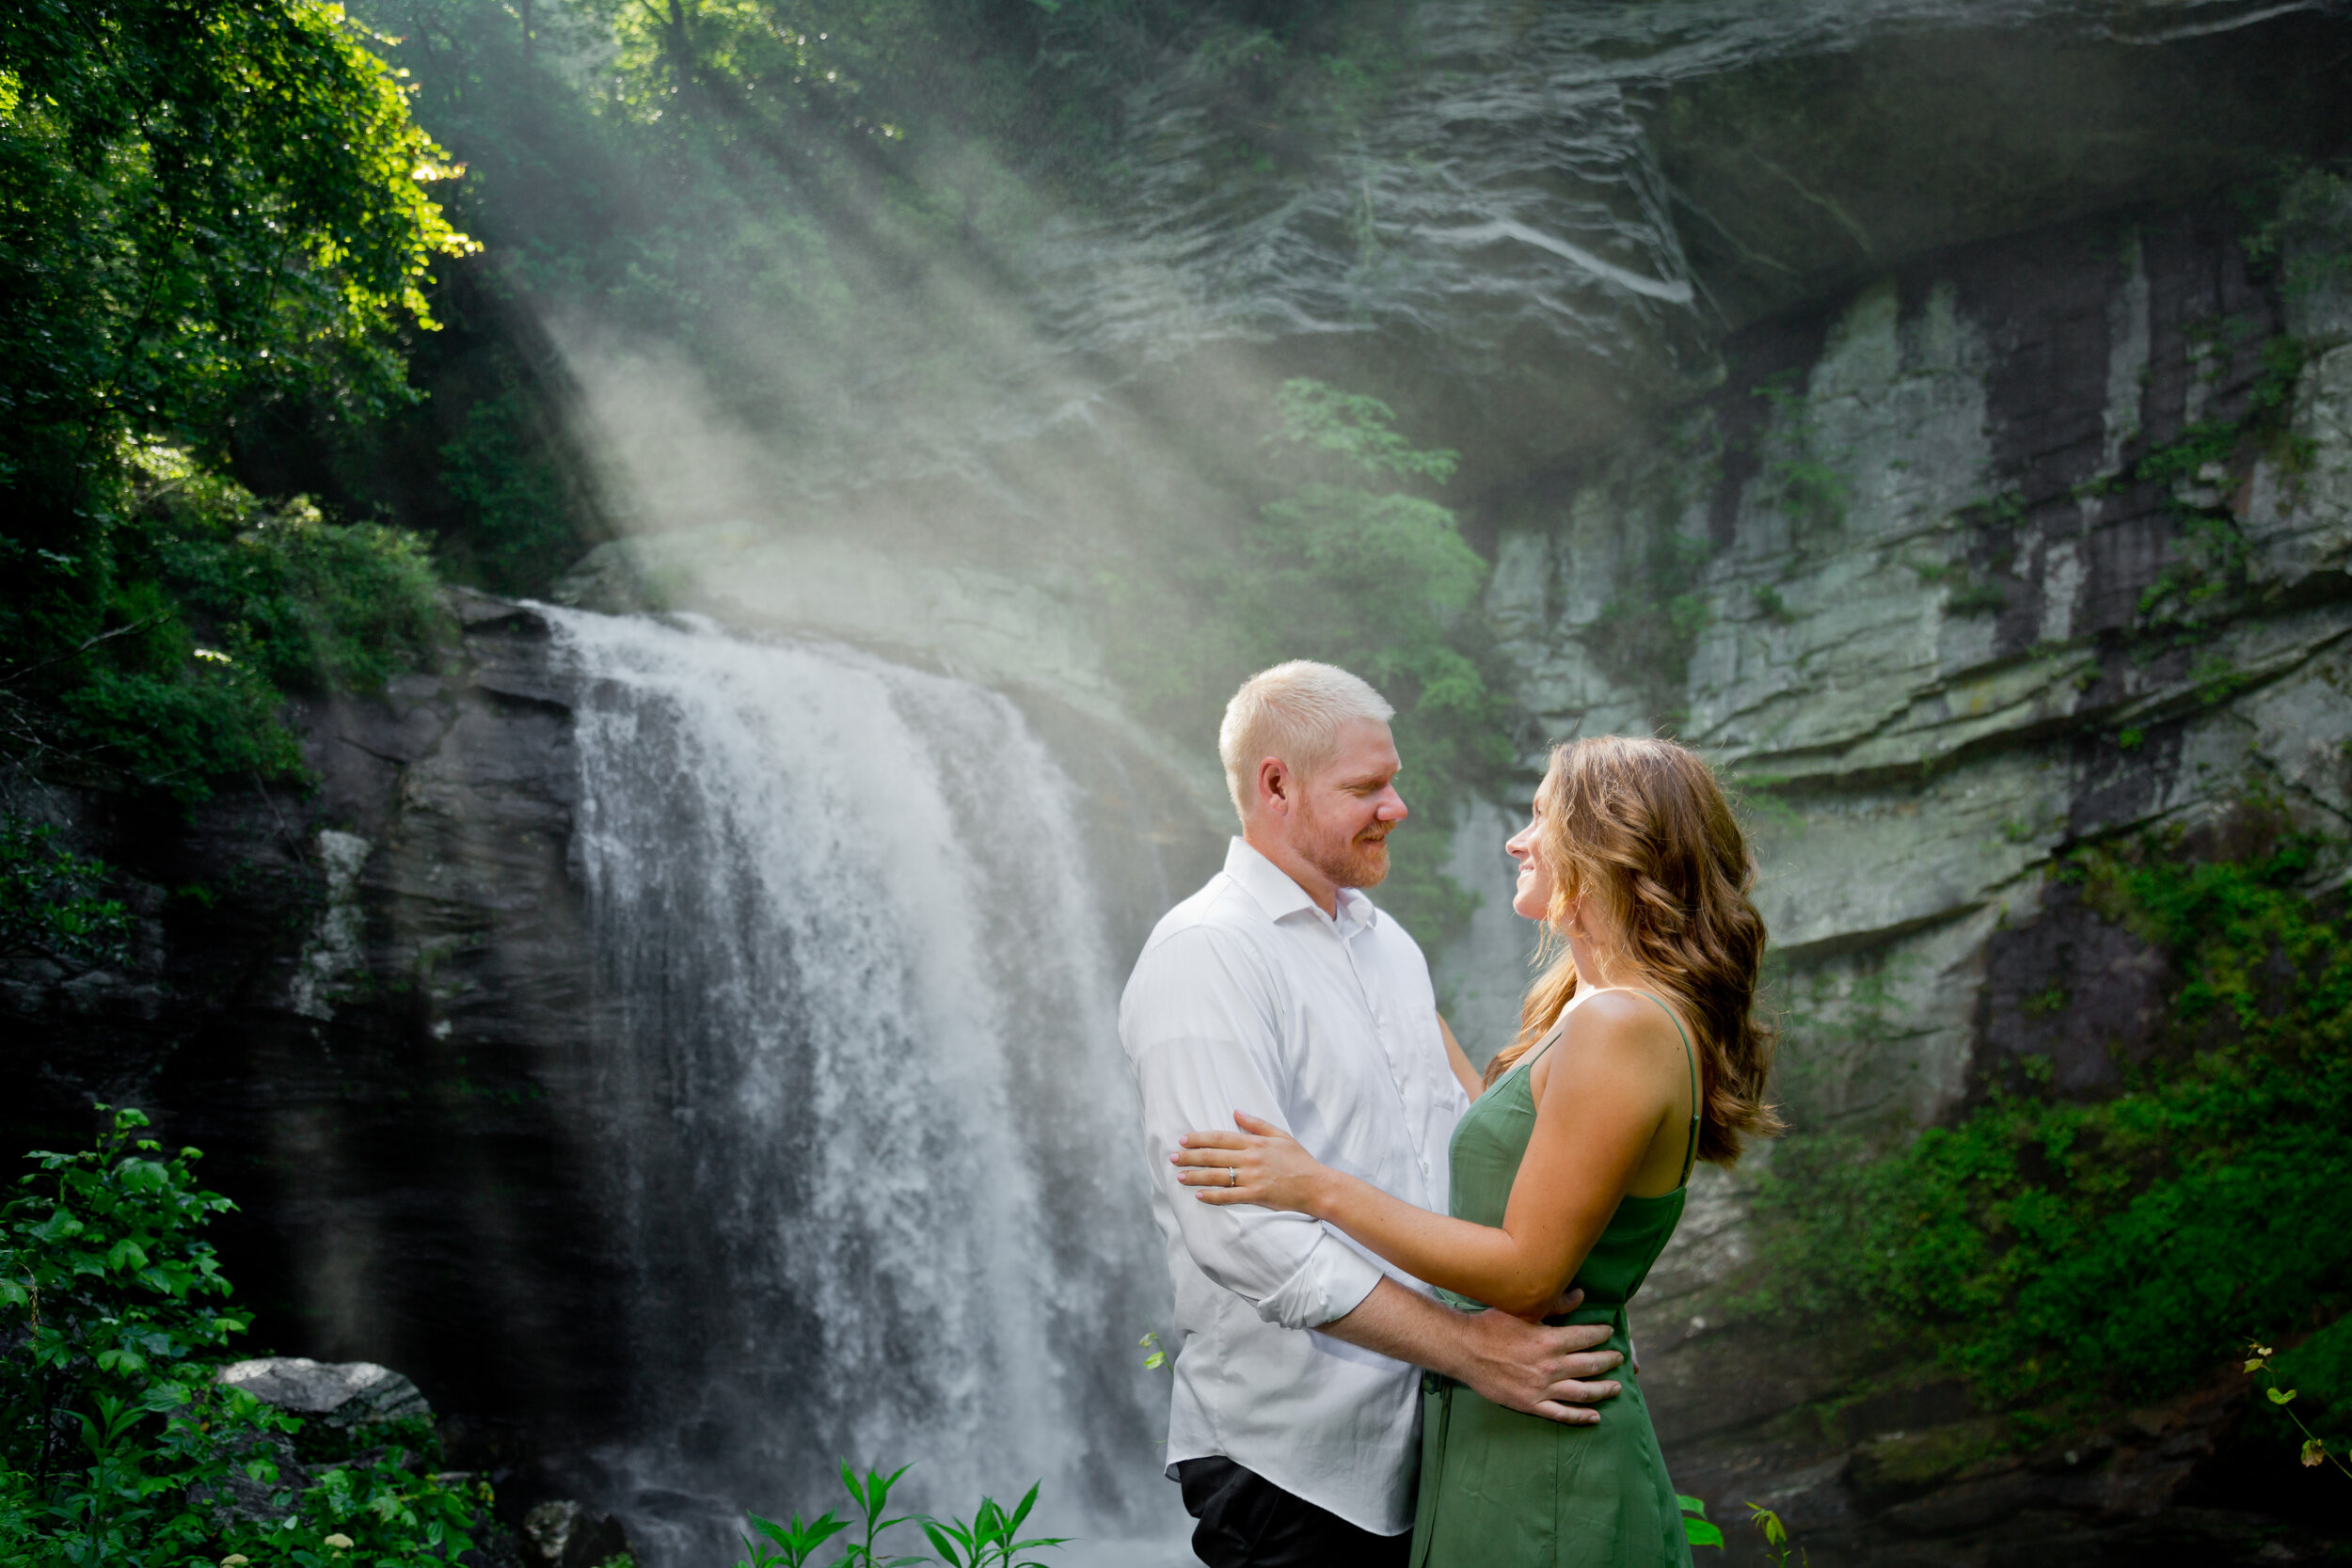 Beautiful Waterfall Engagement Photos - Zack took our engagement photos at Looking Glass Falls last summer. We didn't know what to expect, but the experience was great. The location was beautiful, but unexpectedly very crowded that morning. Zack worked great through the cold water, slippery rocks, and somehow managed to dodge the crowd and get some amazing shots. He is super easy to work with, very responsive, and is an experienced and talented photographer. I cant wait to work with him for my bridals this month and our wedding next month. I highly recommend Zack Bradley Photography!